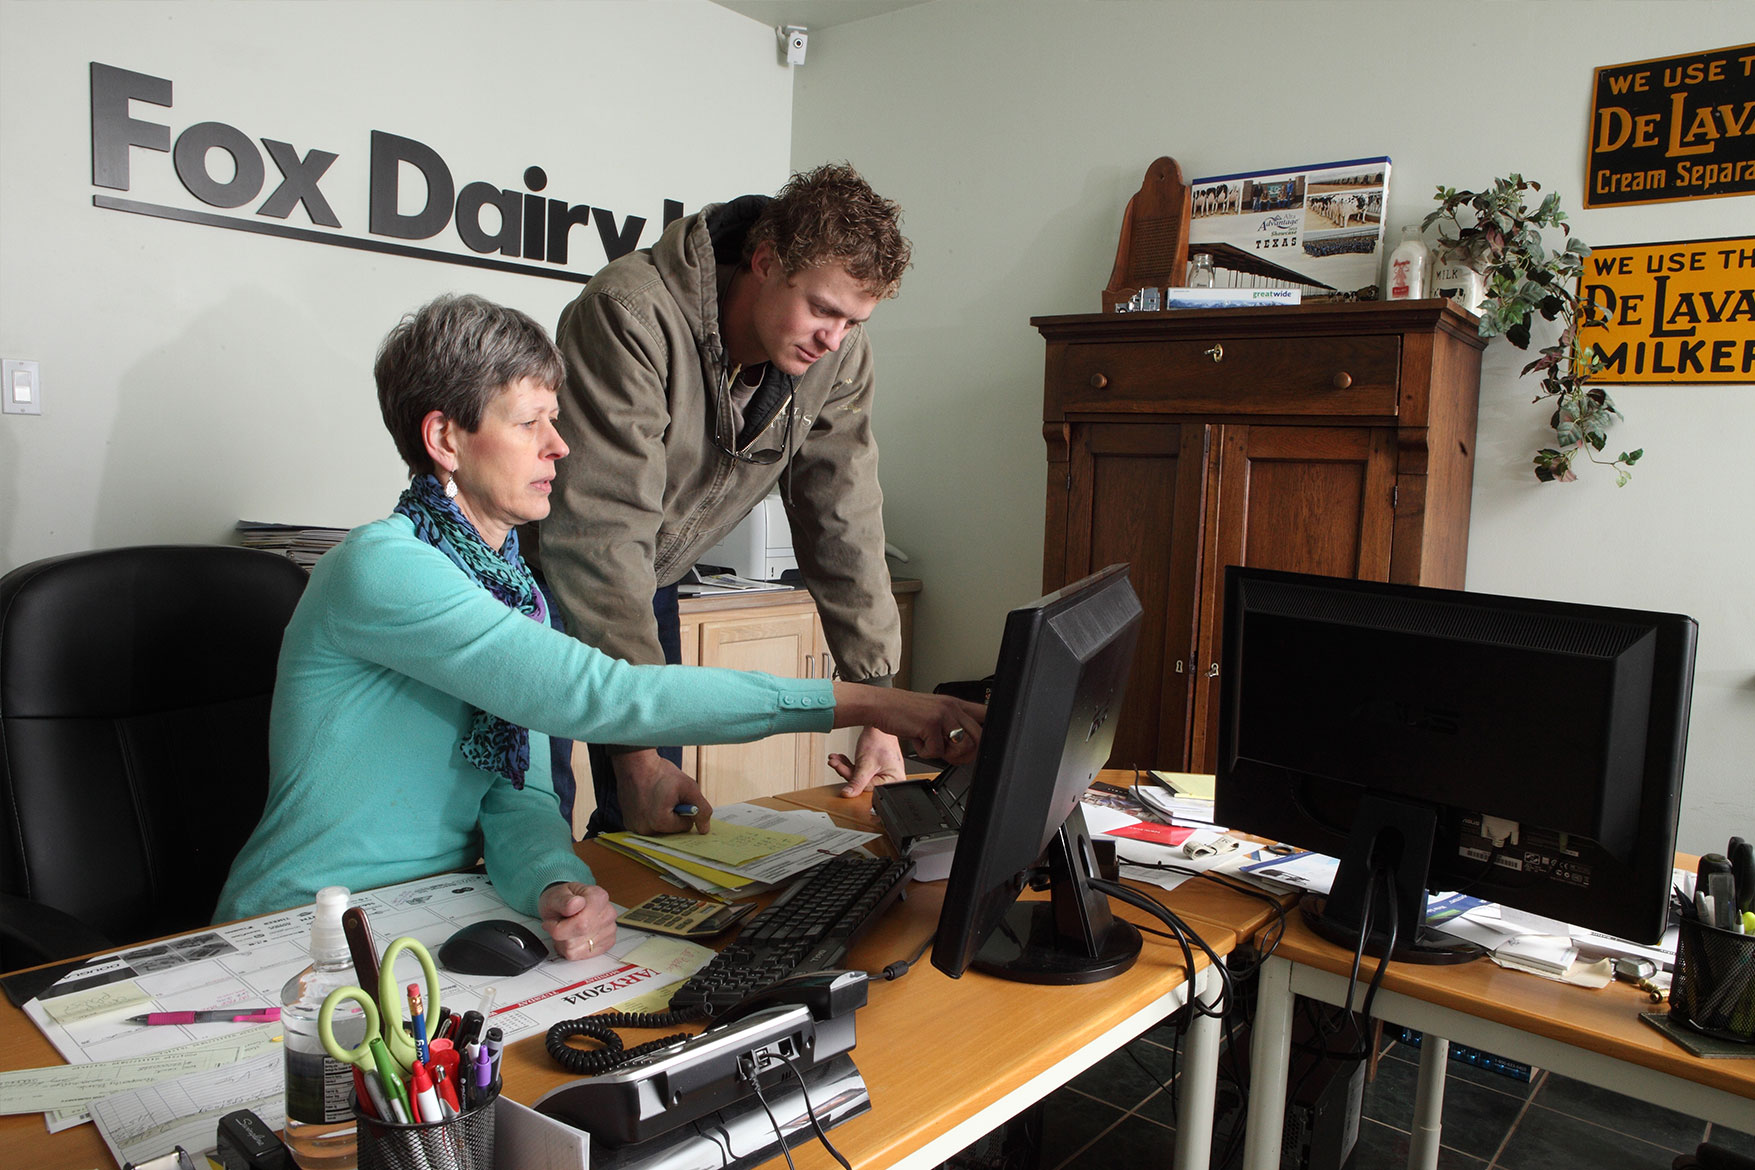 Pauline DeVos and her son look over records at the dairy's office.